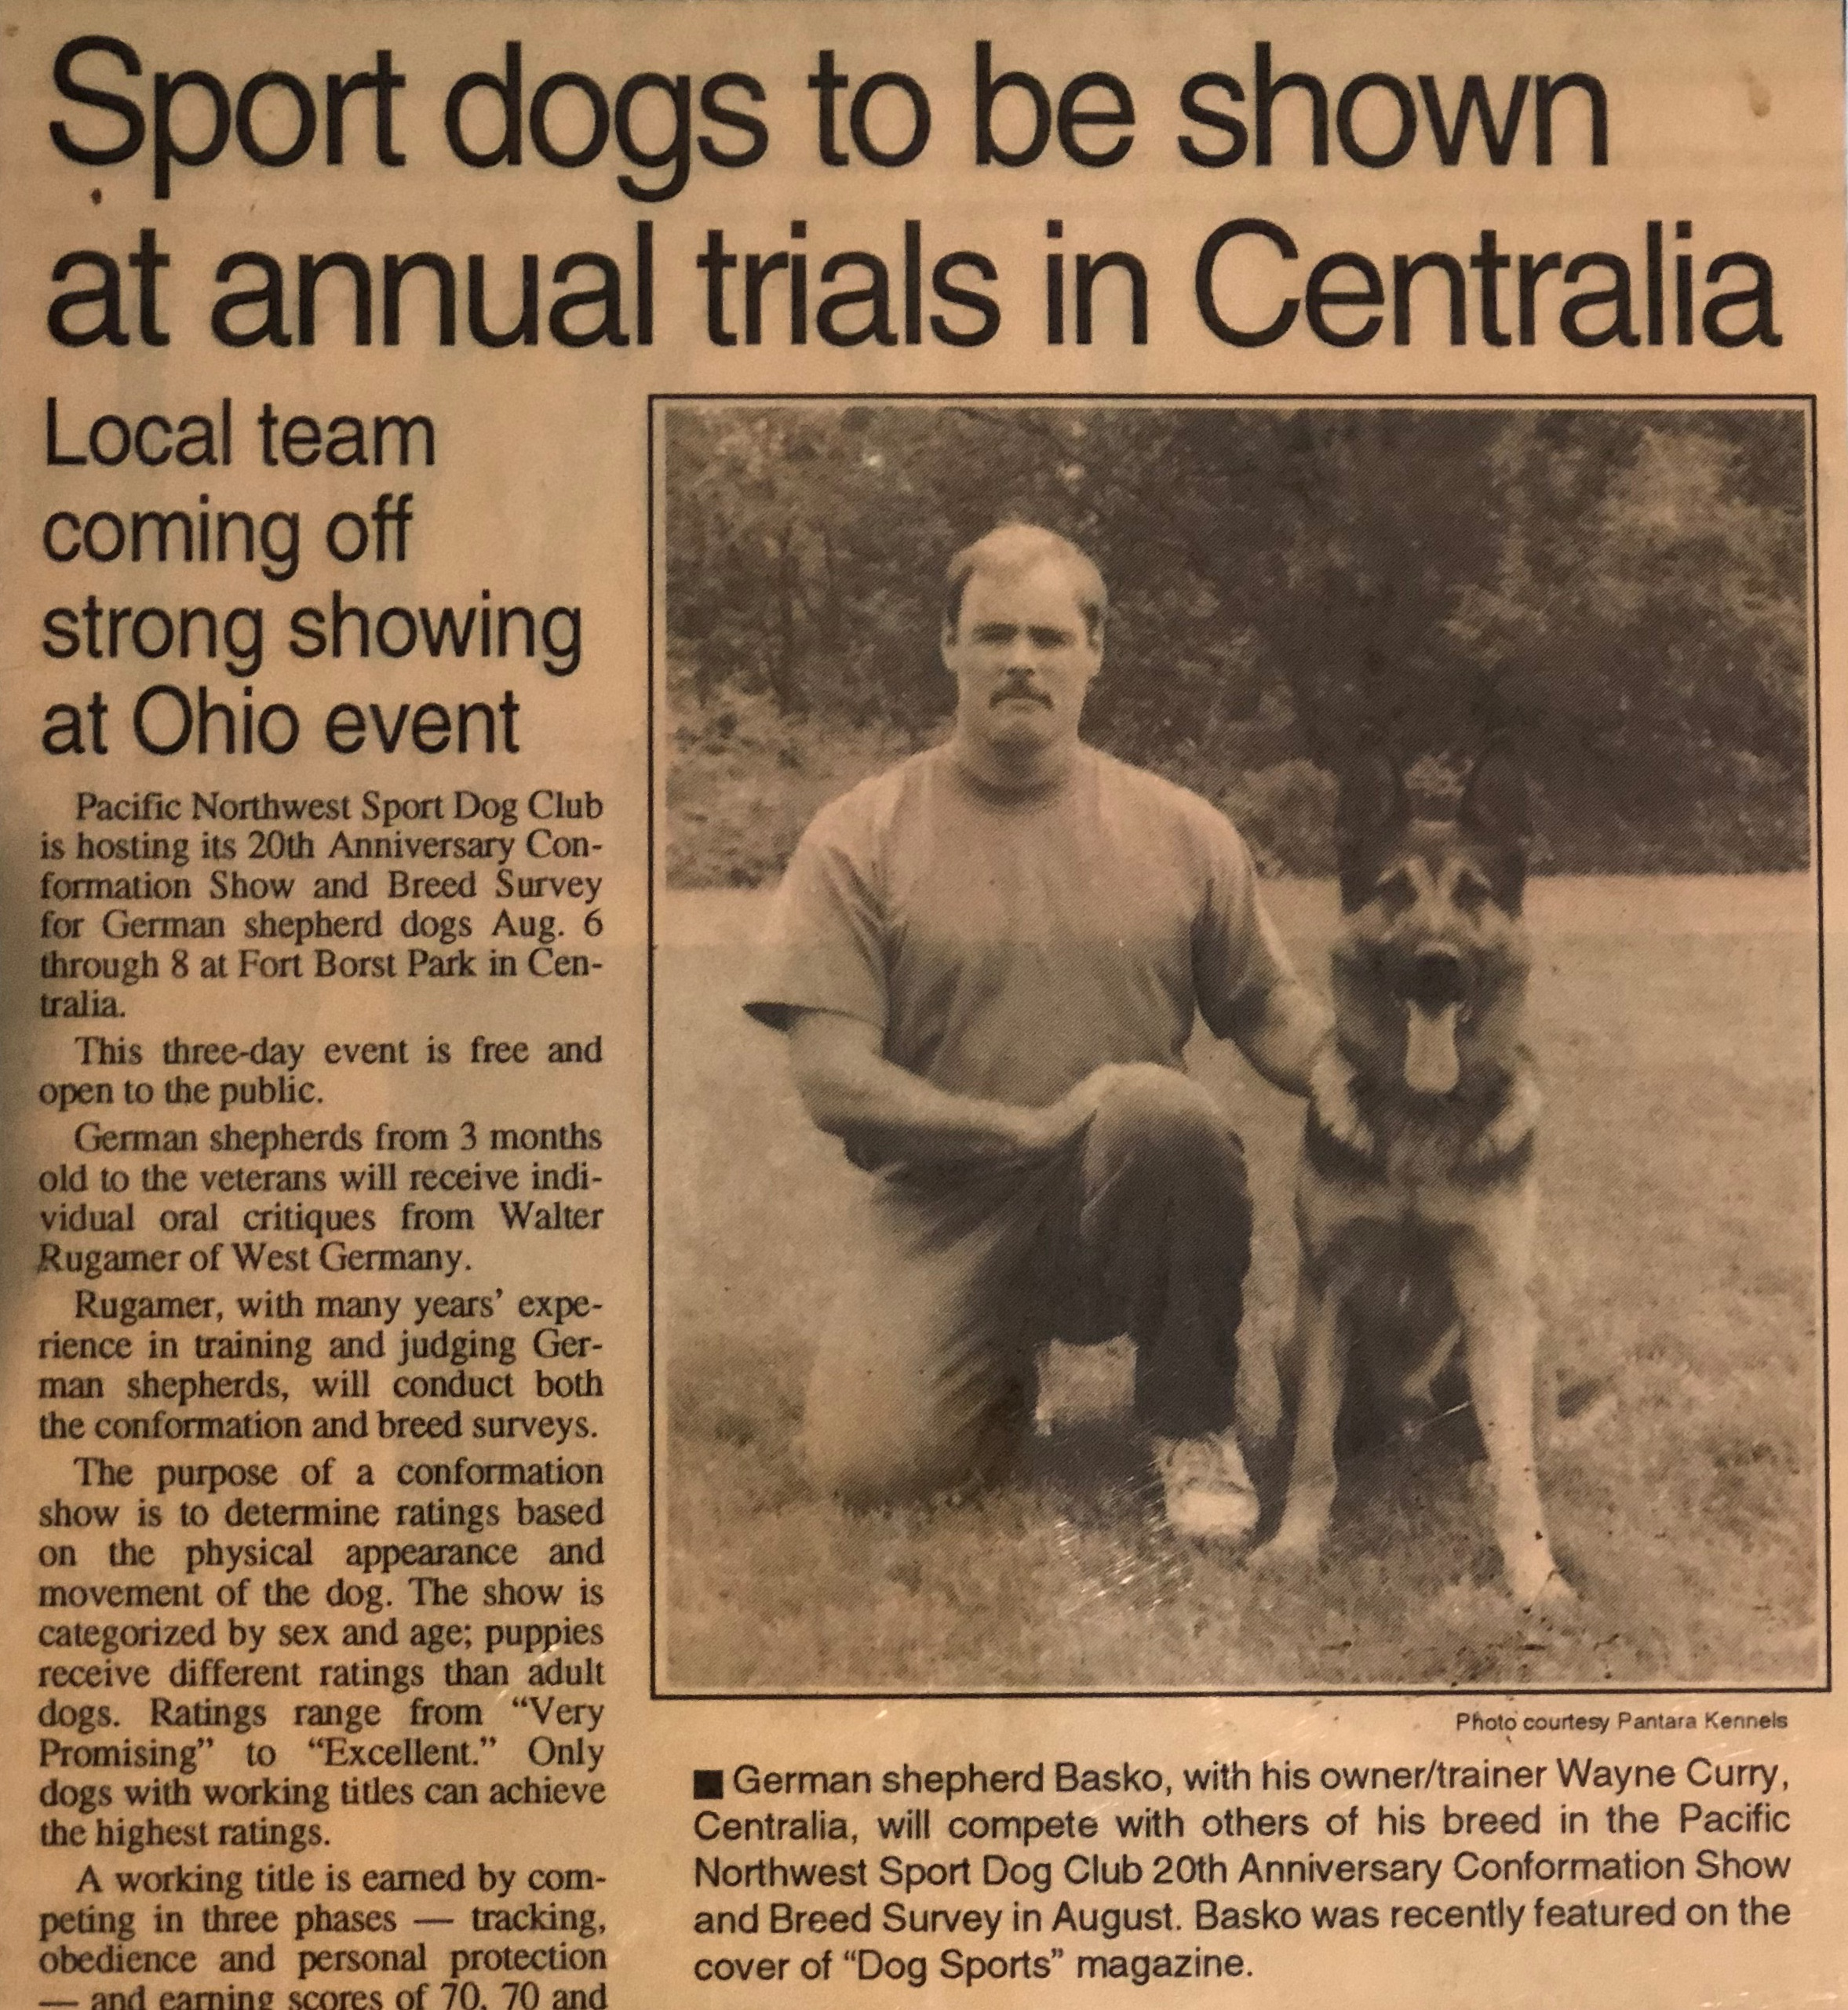 Read the full article - Chehalis July 28th 1993